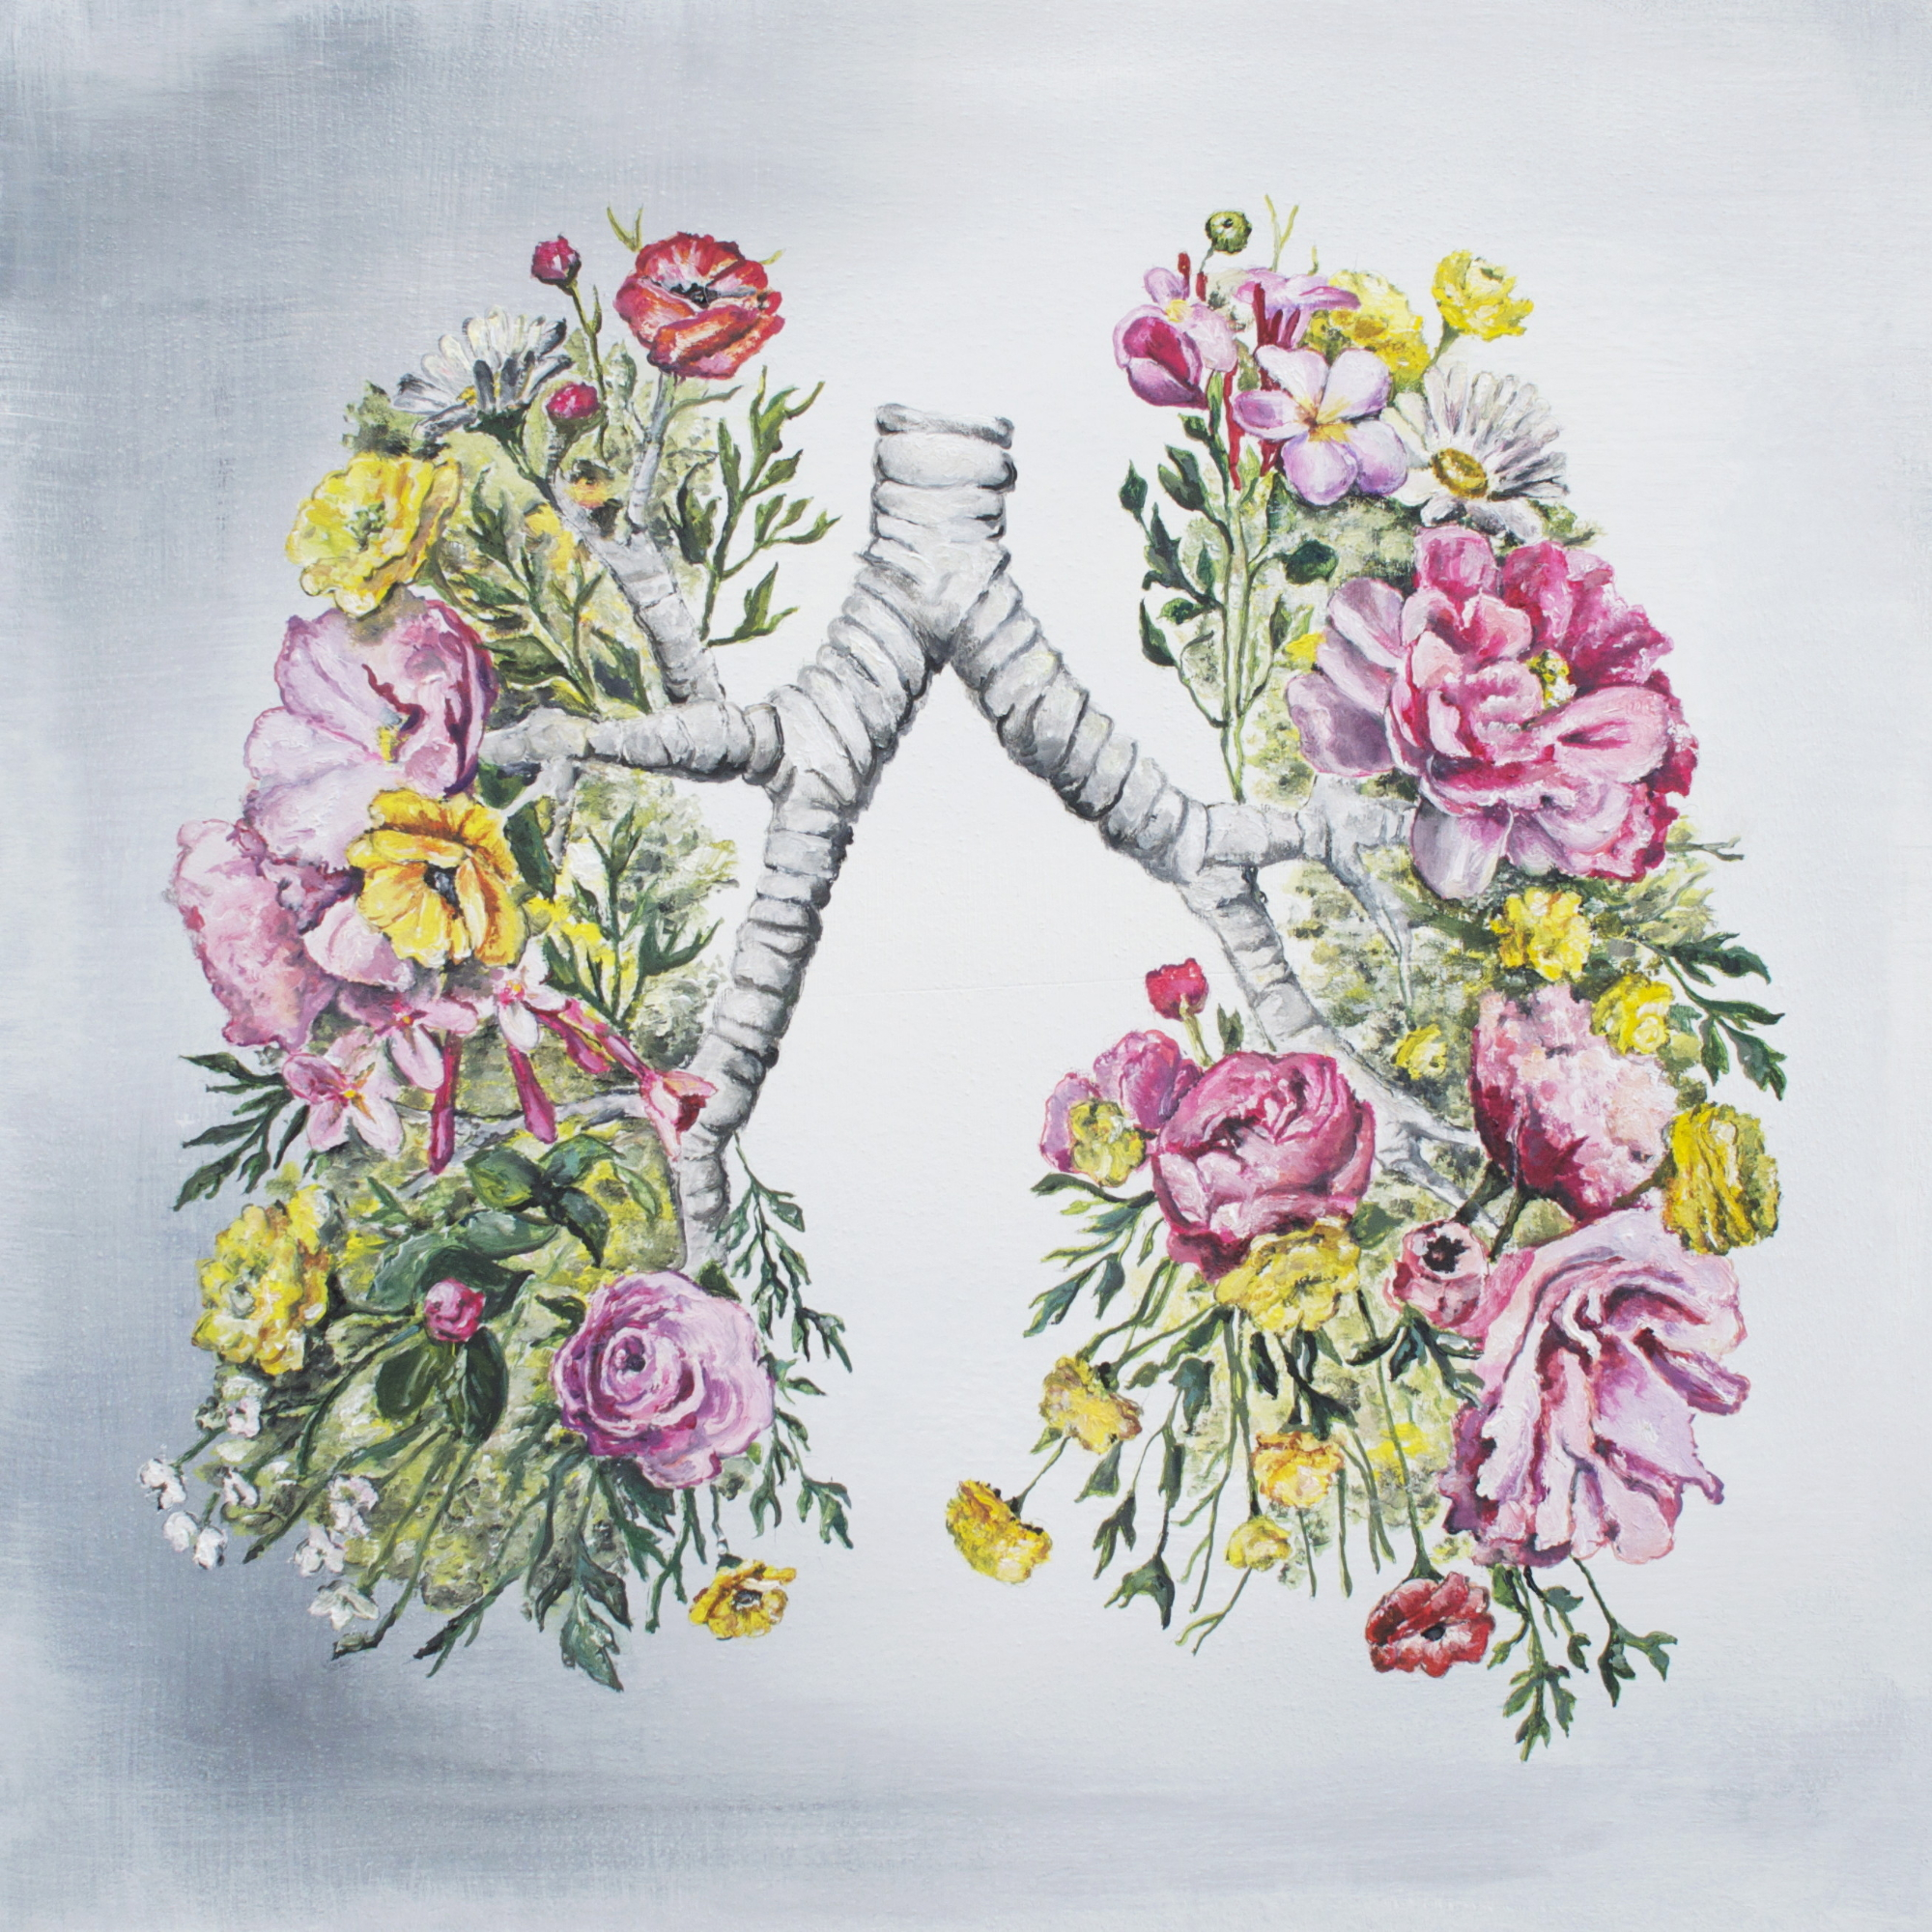 Floral Anatomy Lungs (ITEM NO: 010)  Print Size:8x8 inches  $12.50 Wholesale at 50% off  $25 RRP